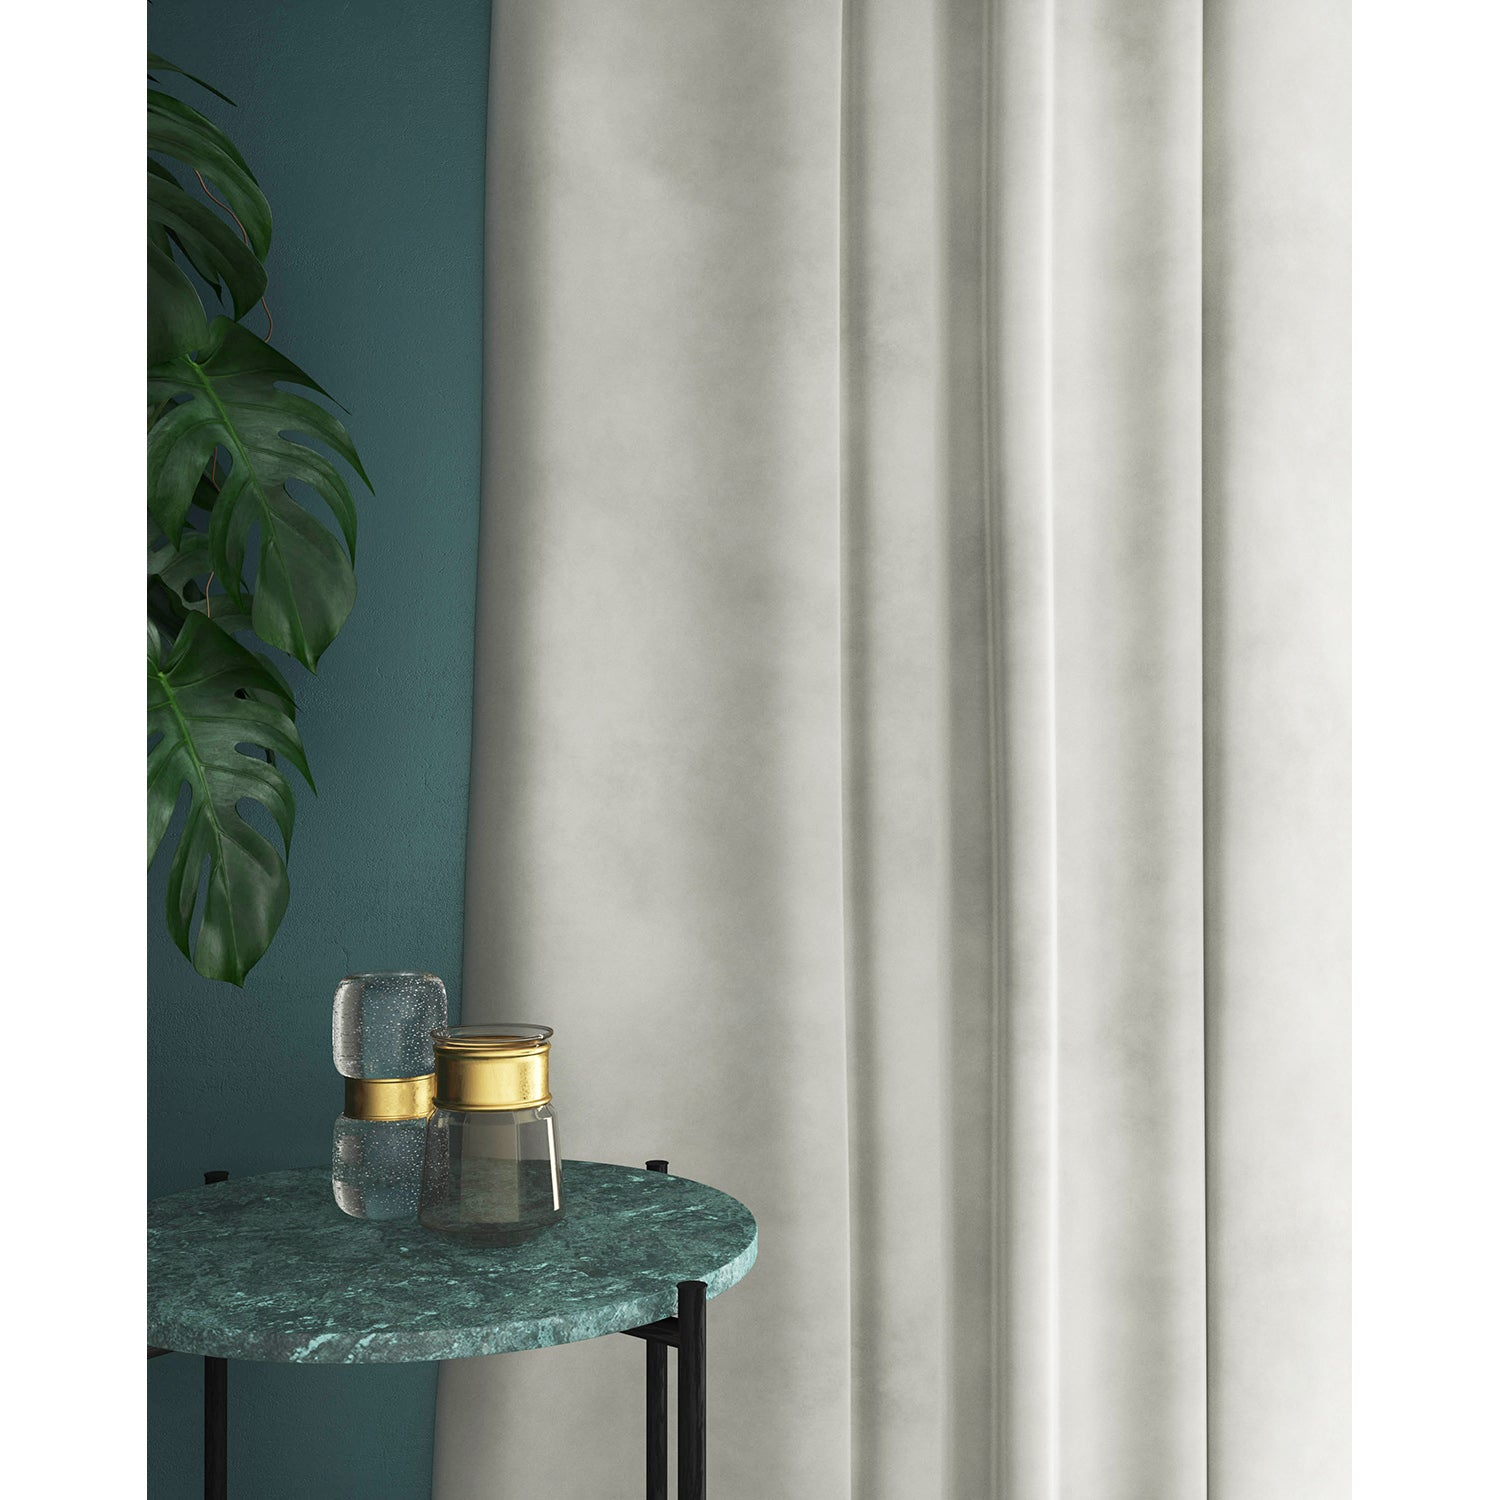 Curtains in a off-white plain velvet fabric with a stain resist finish